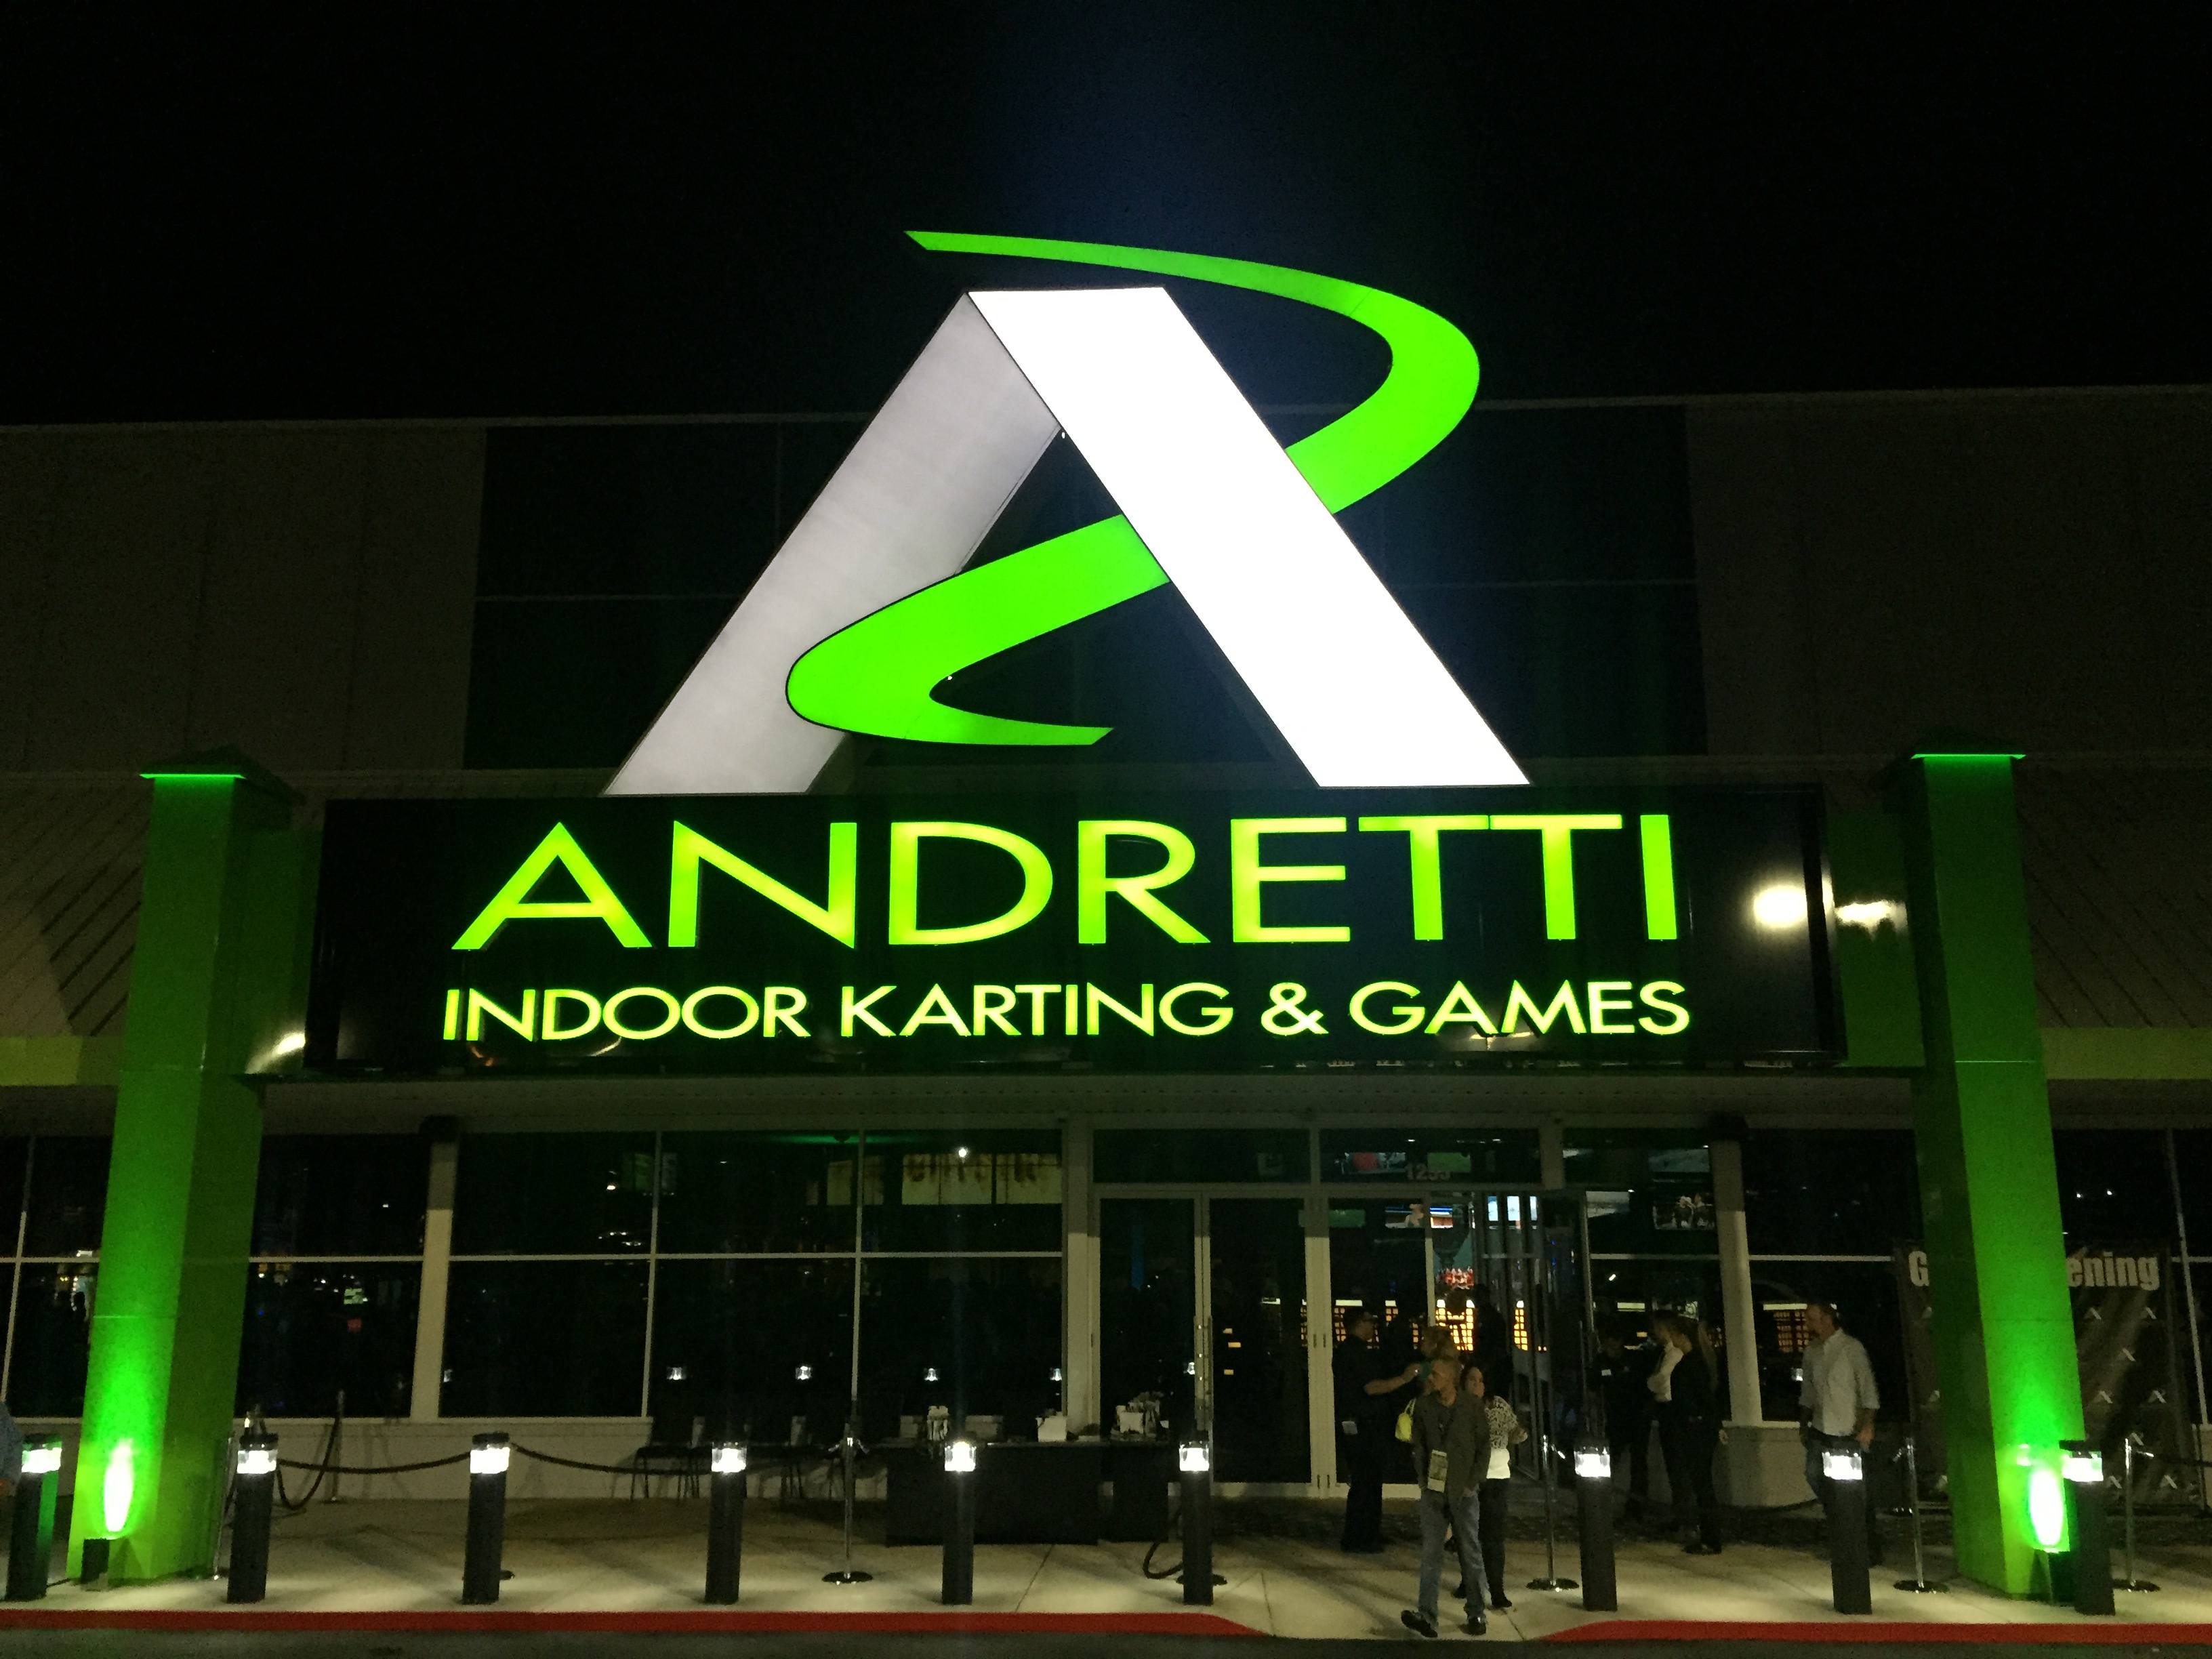 Carriage Kia Woodstock >> Andretti Indoor Karting & Games - Marietta, GA - CCS Image ...